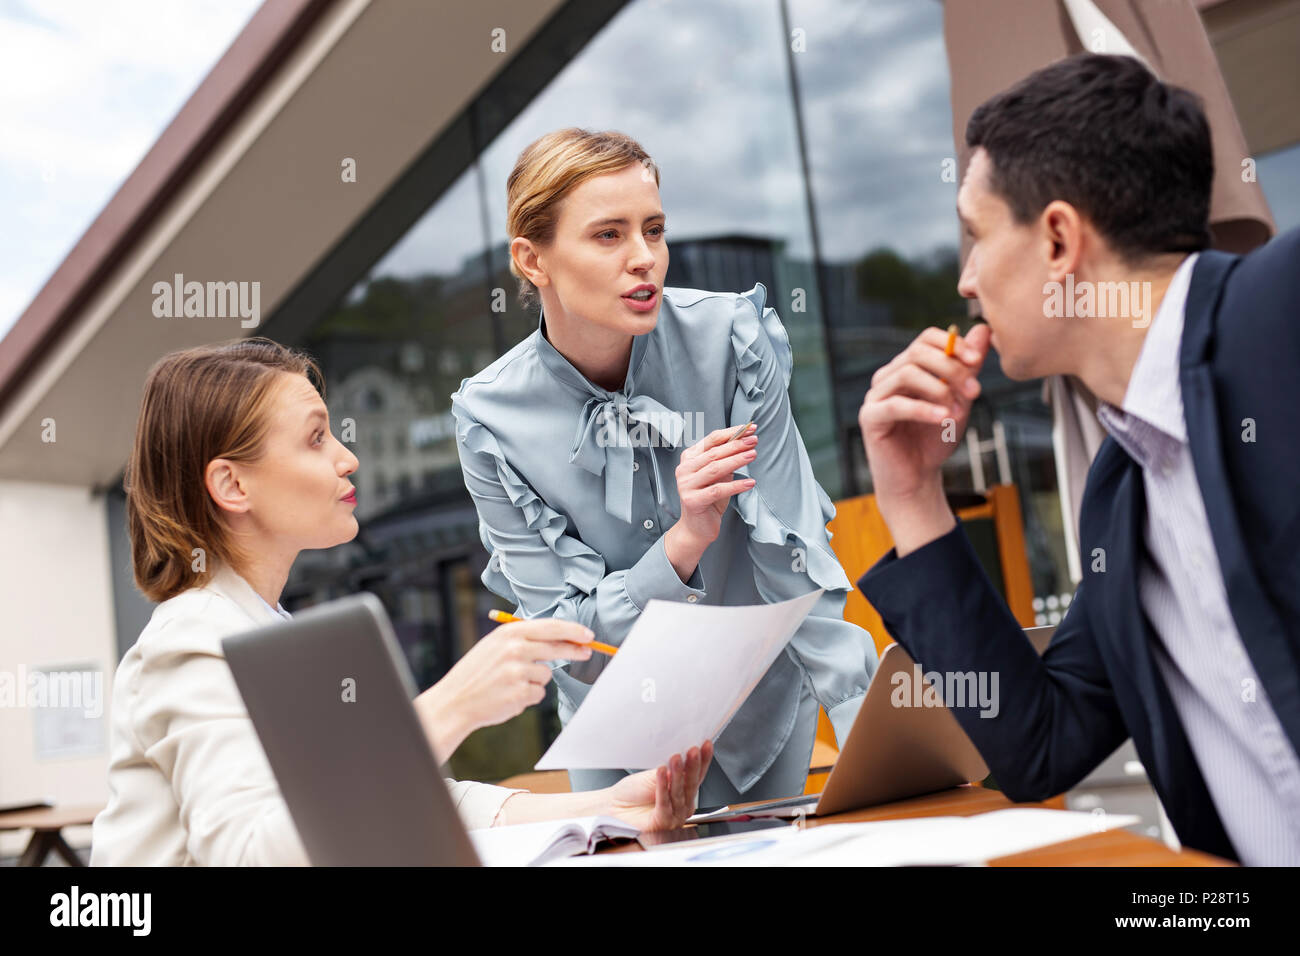 Three prosperous executives feeling employed discussing potential - Stock Image